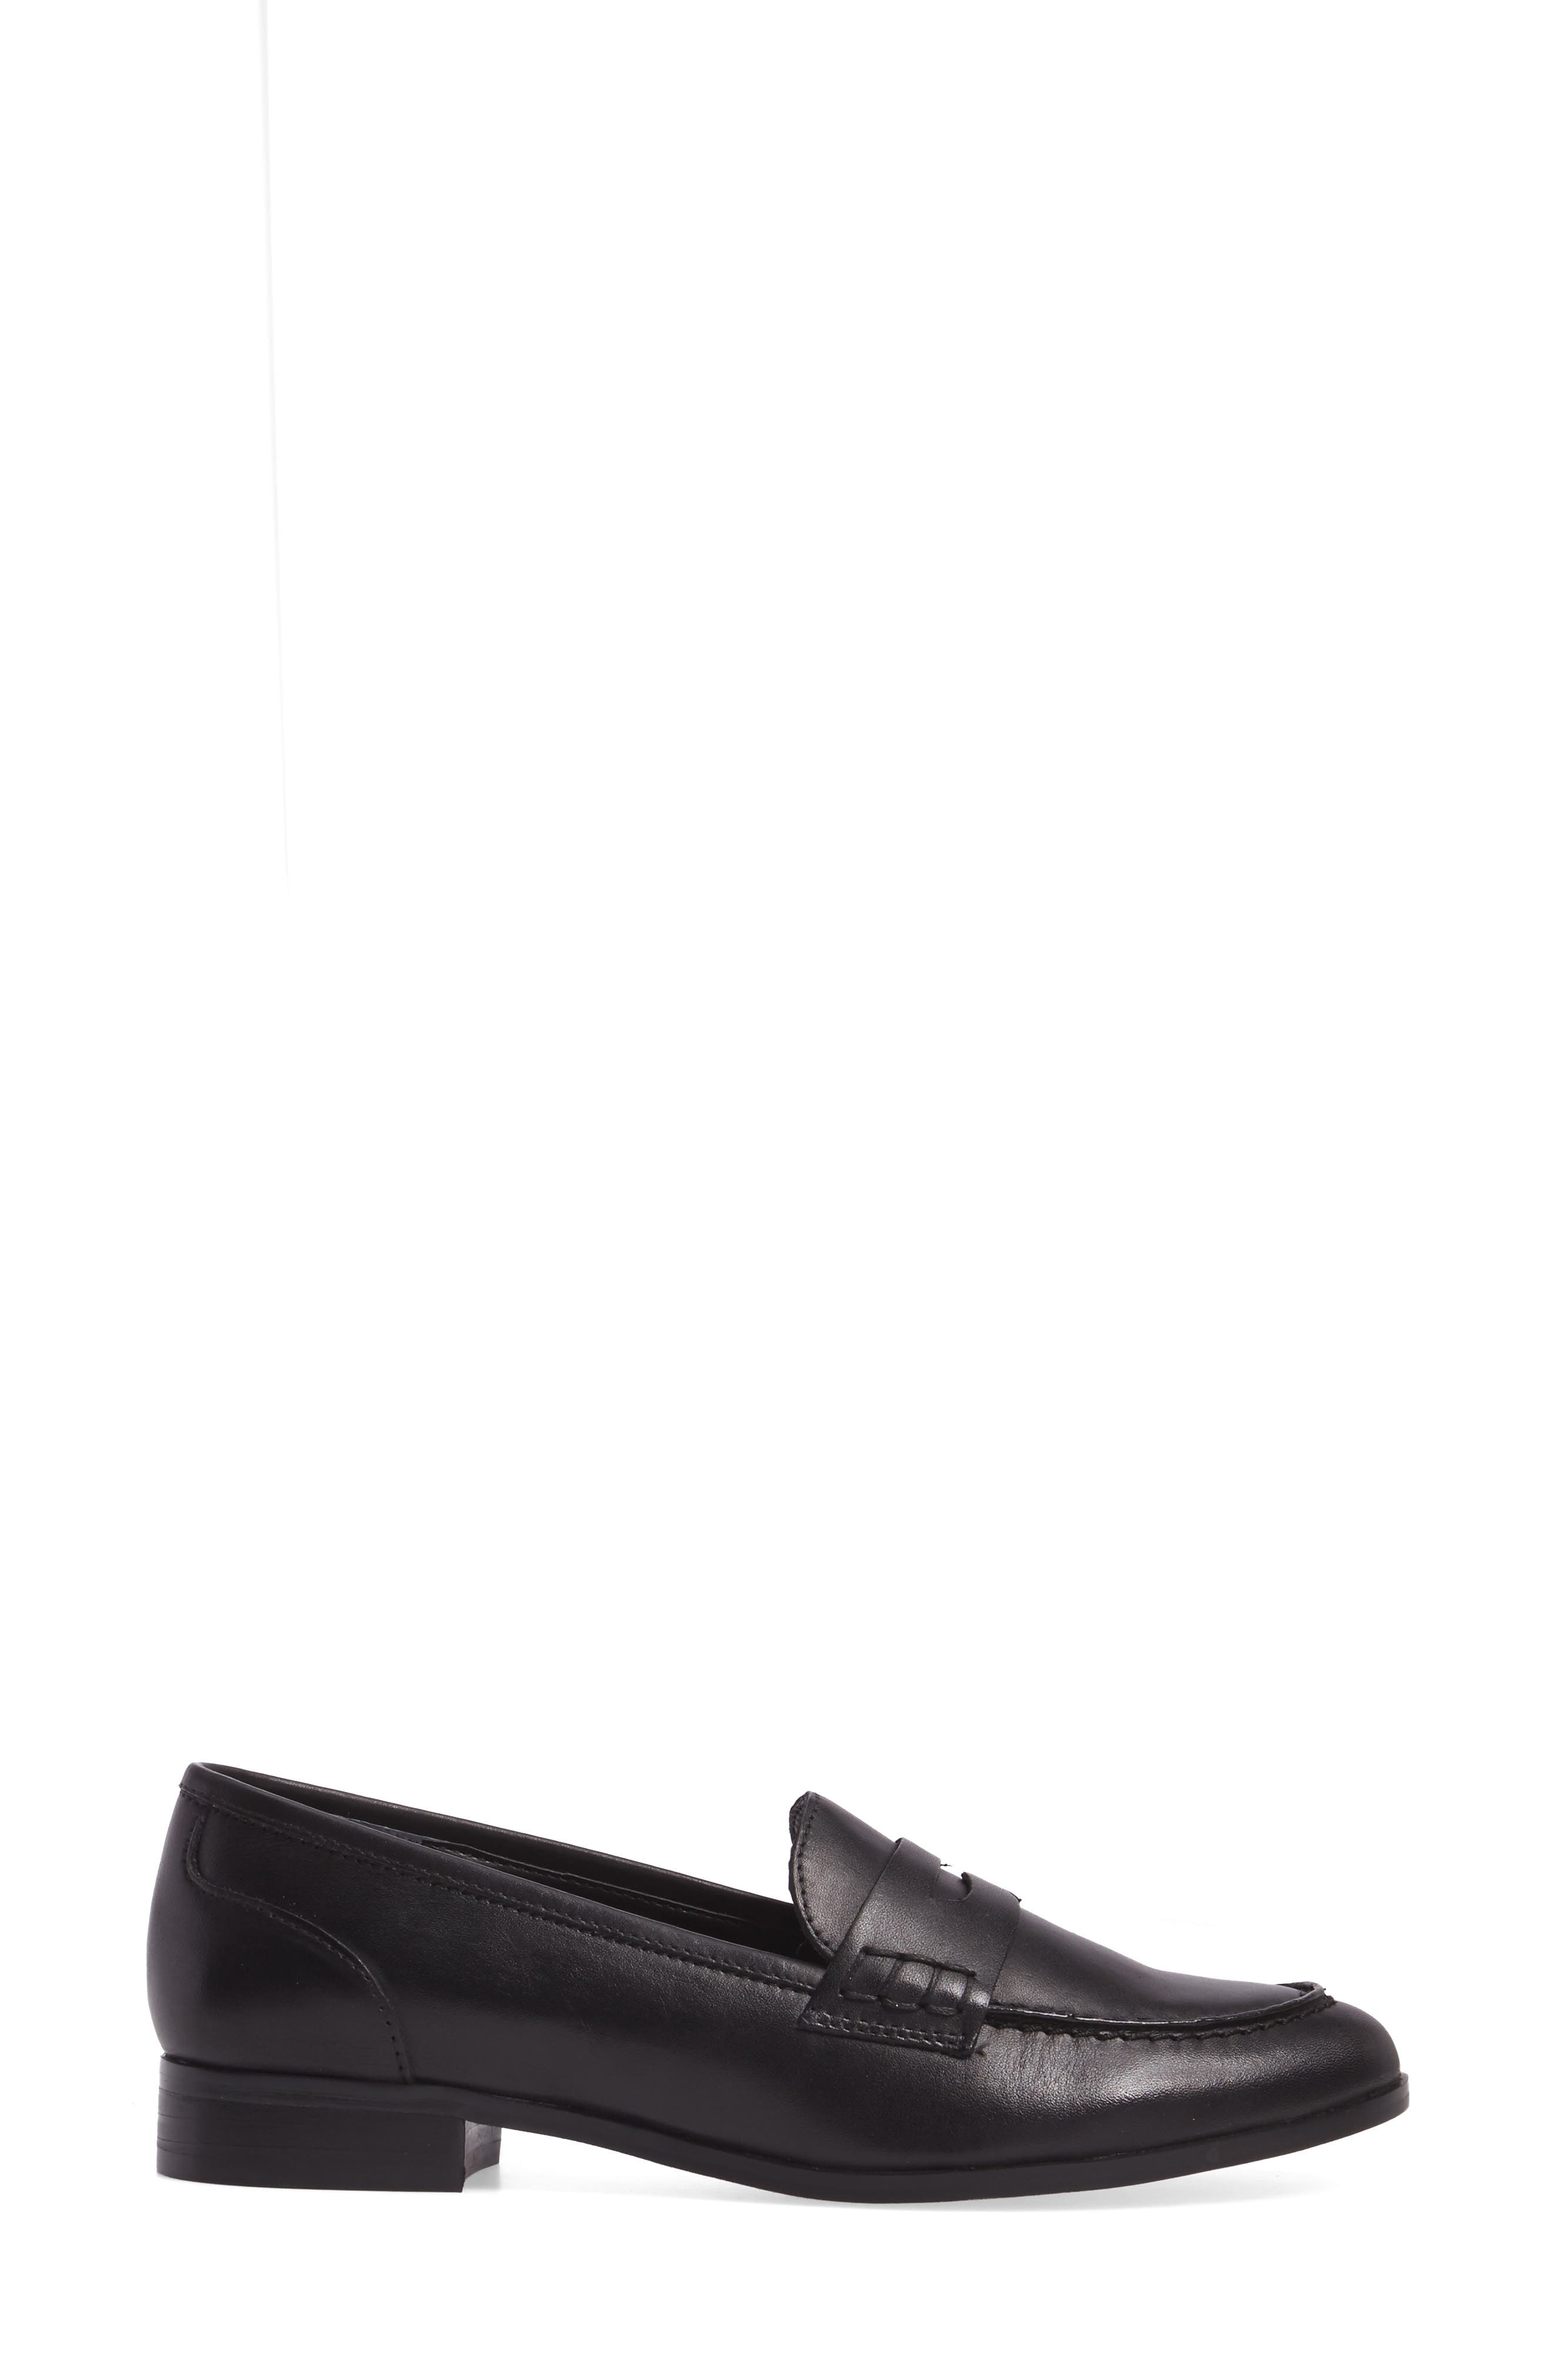 Georgie Penny Loafer,                             Alternate thumbnail 3, color,                             Black Leather